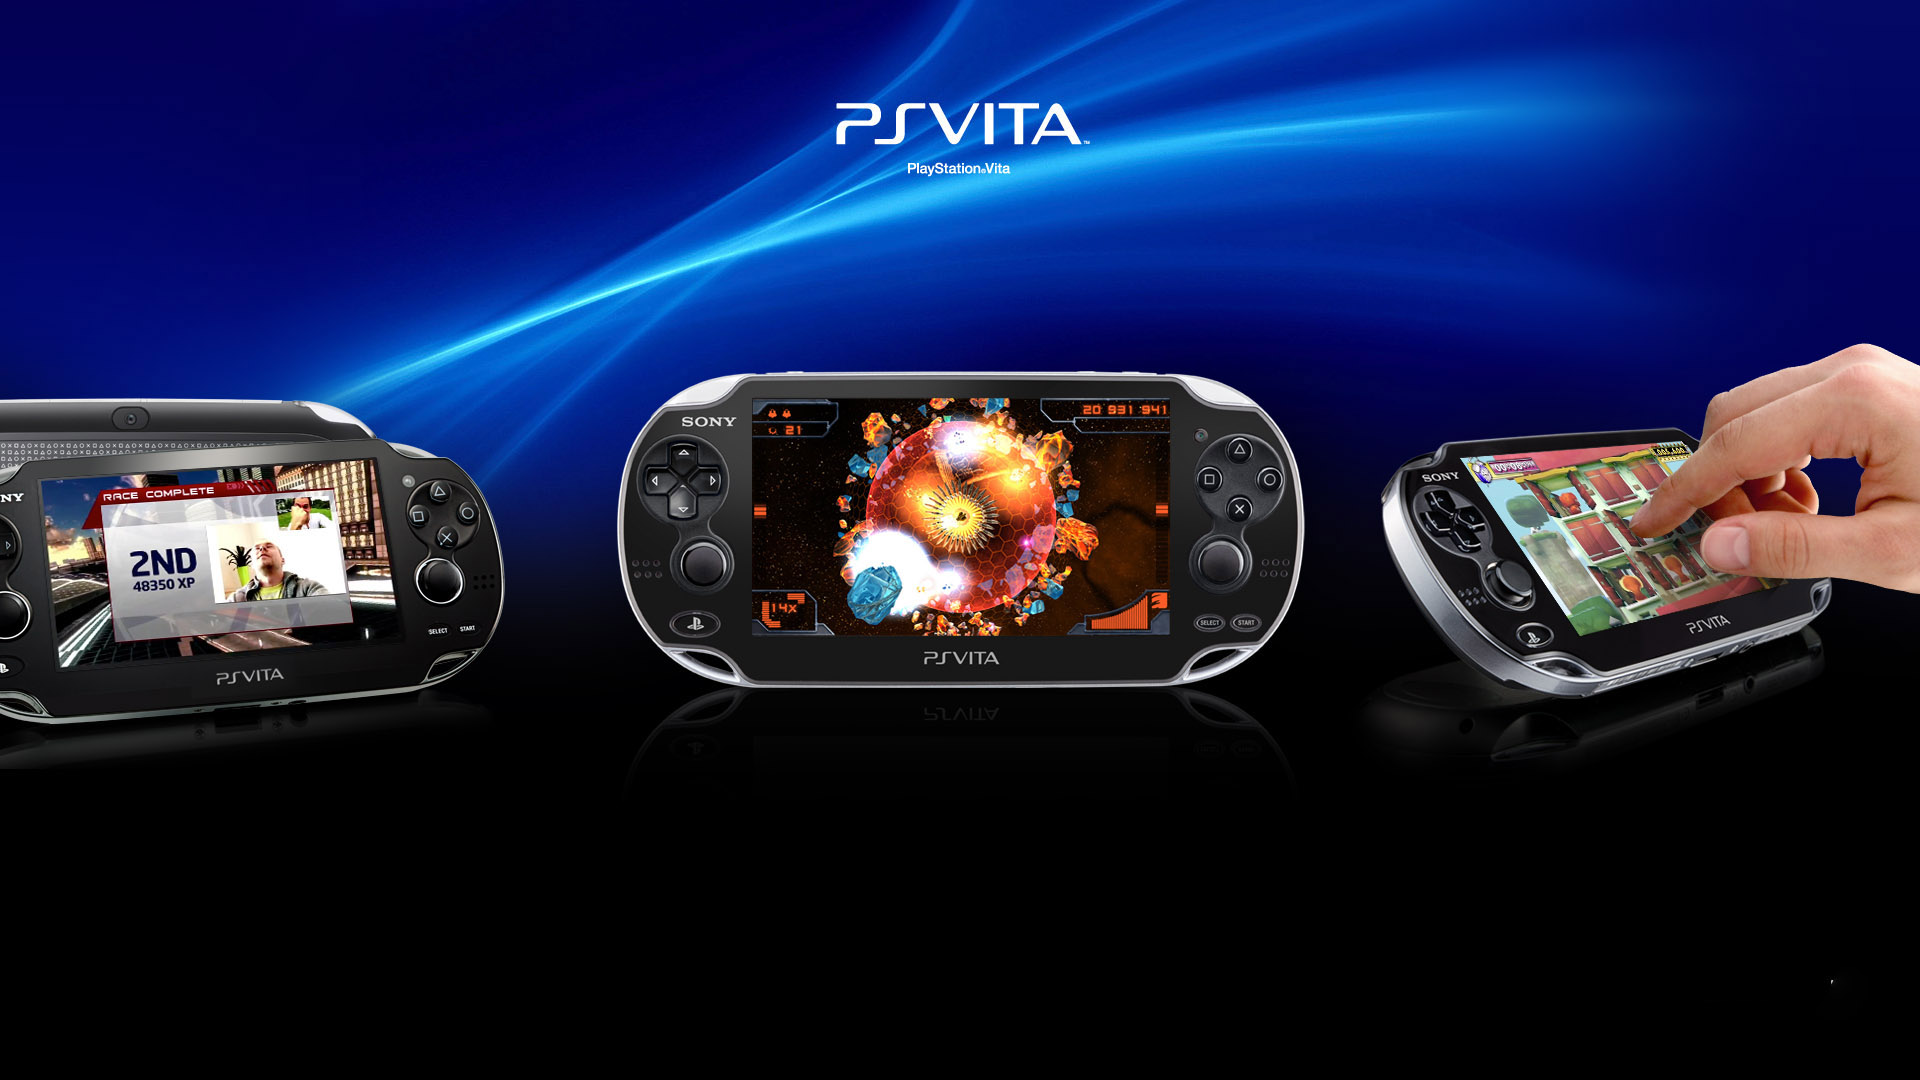 PS Vita and a PS5 Portable – Thoughts on the future of Sony Handhelds